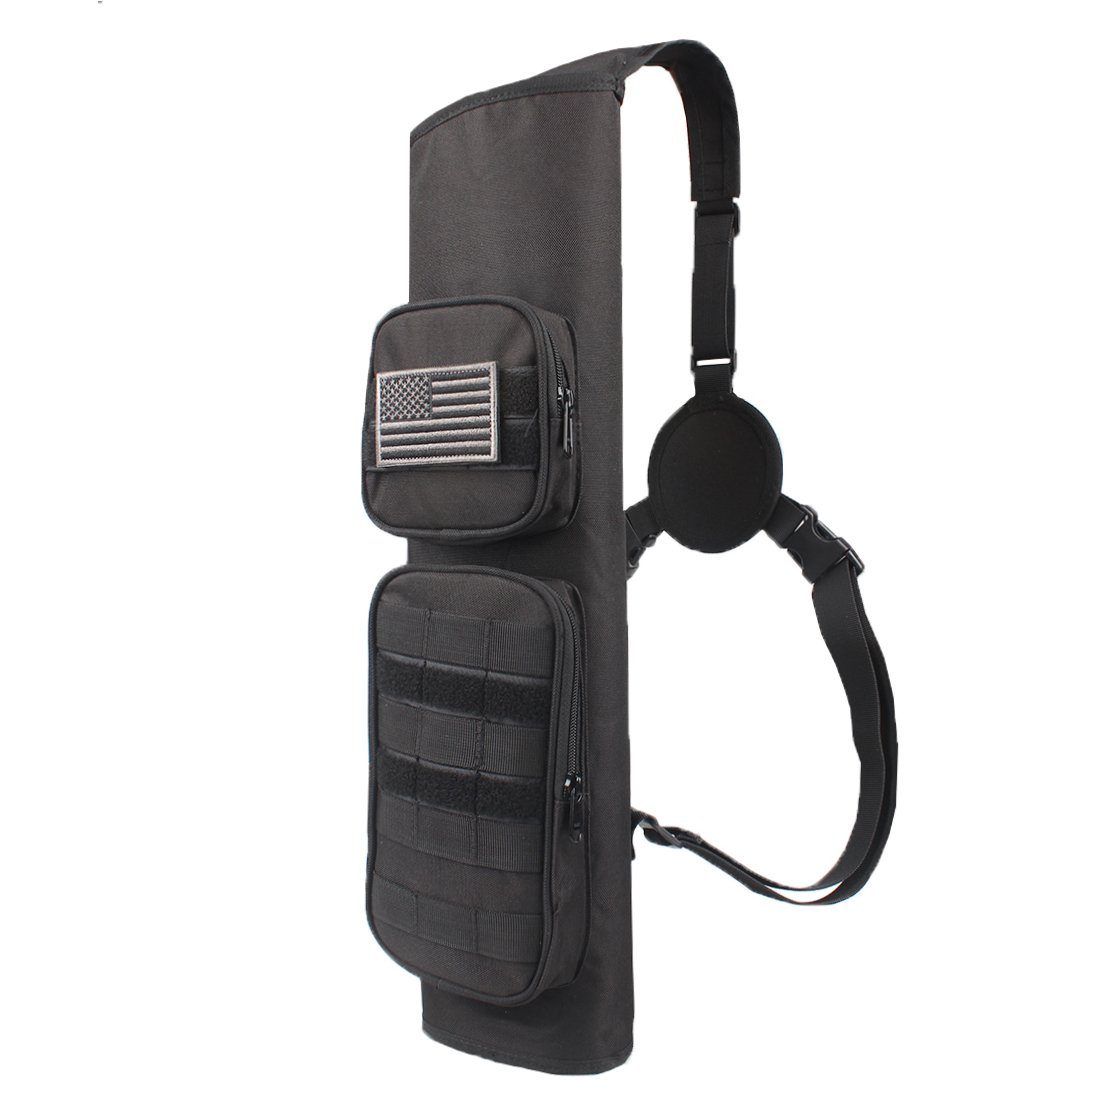 KRATARC Archery Back Arrows Quiver Bag with Molle System and Pockets for Hunting Shooting Target Practice (Black- molle Design)